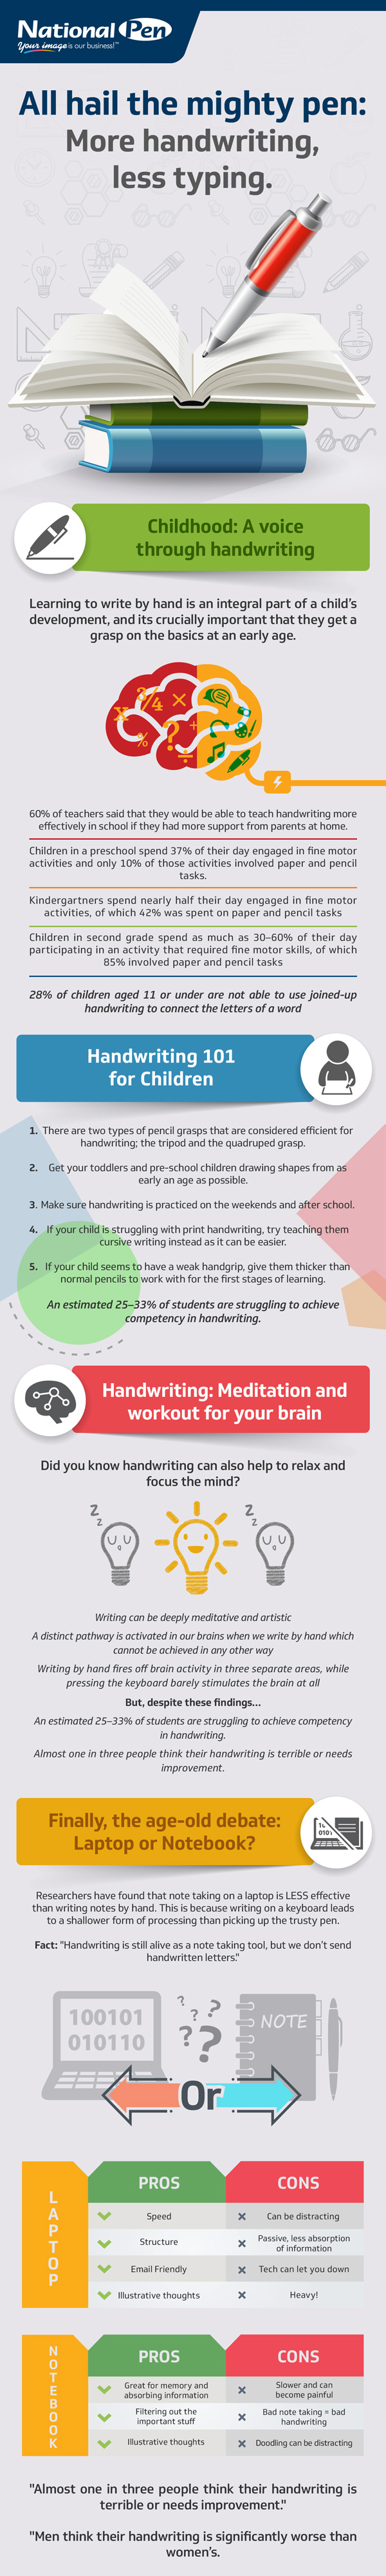 handwriting_infographic